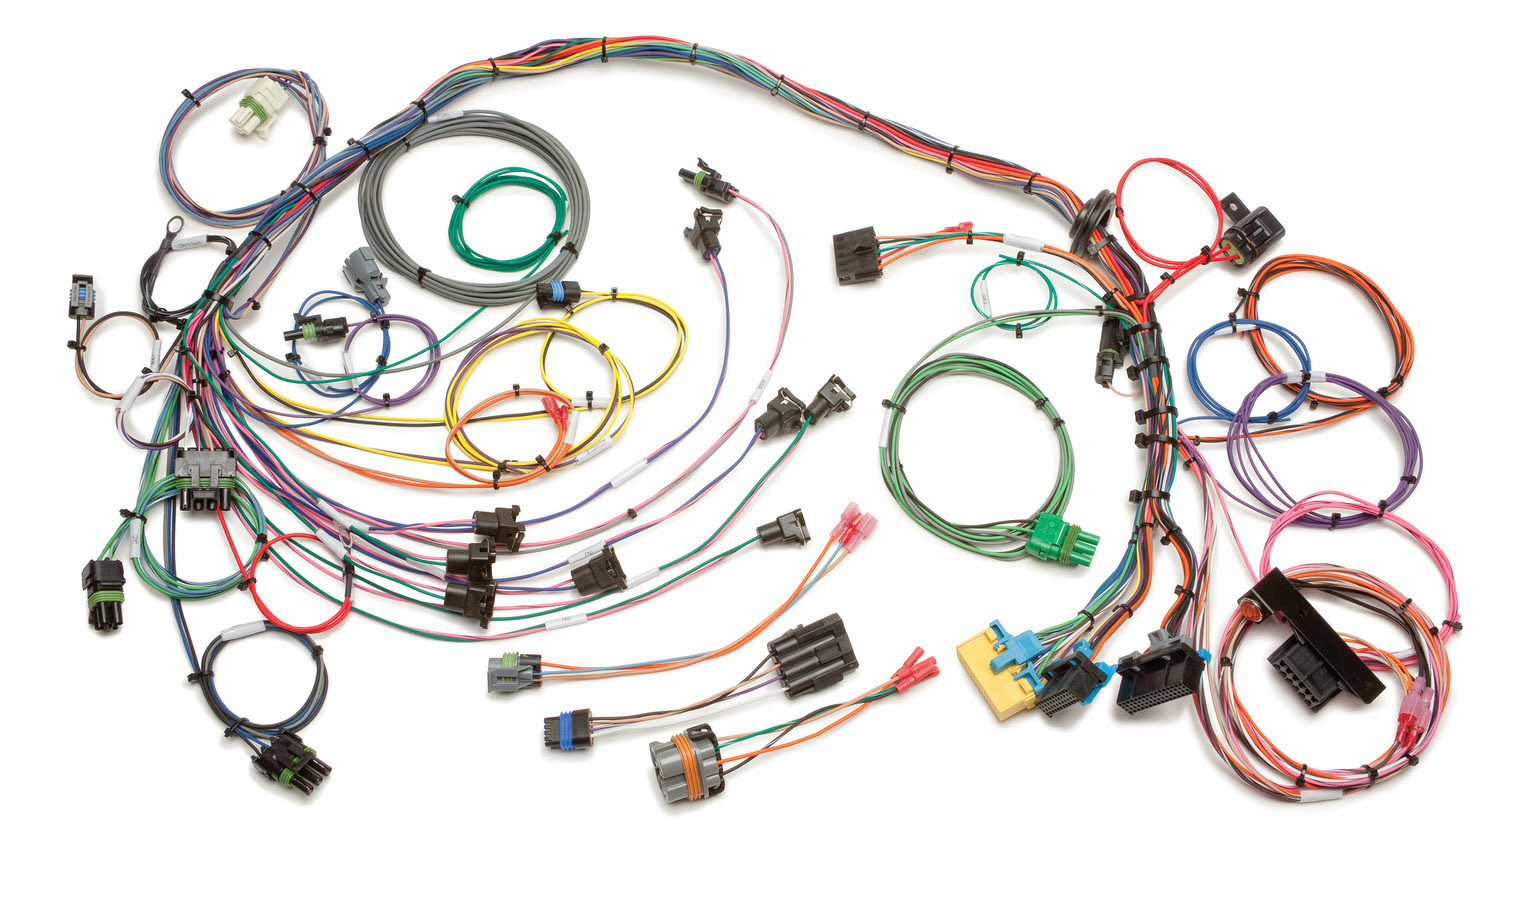 Painless Wiring 60103 EFI Wiring Harness, GM TPI Injection 1990-92, Small Block Chevy, Kit